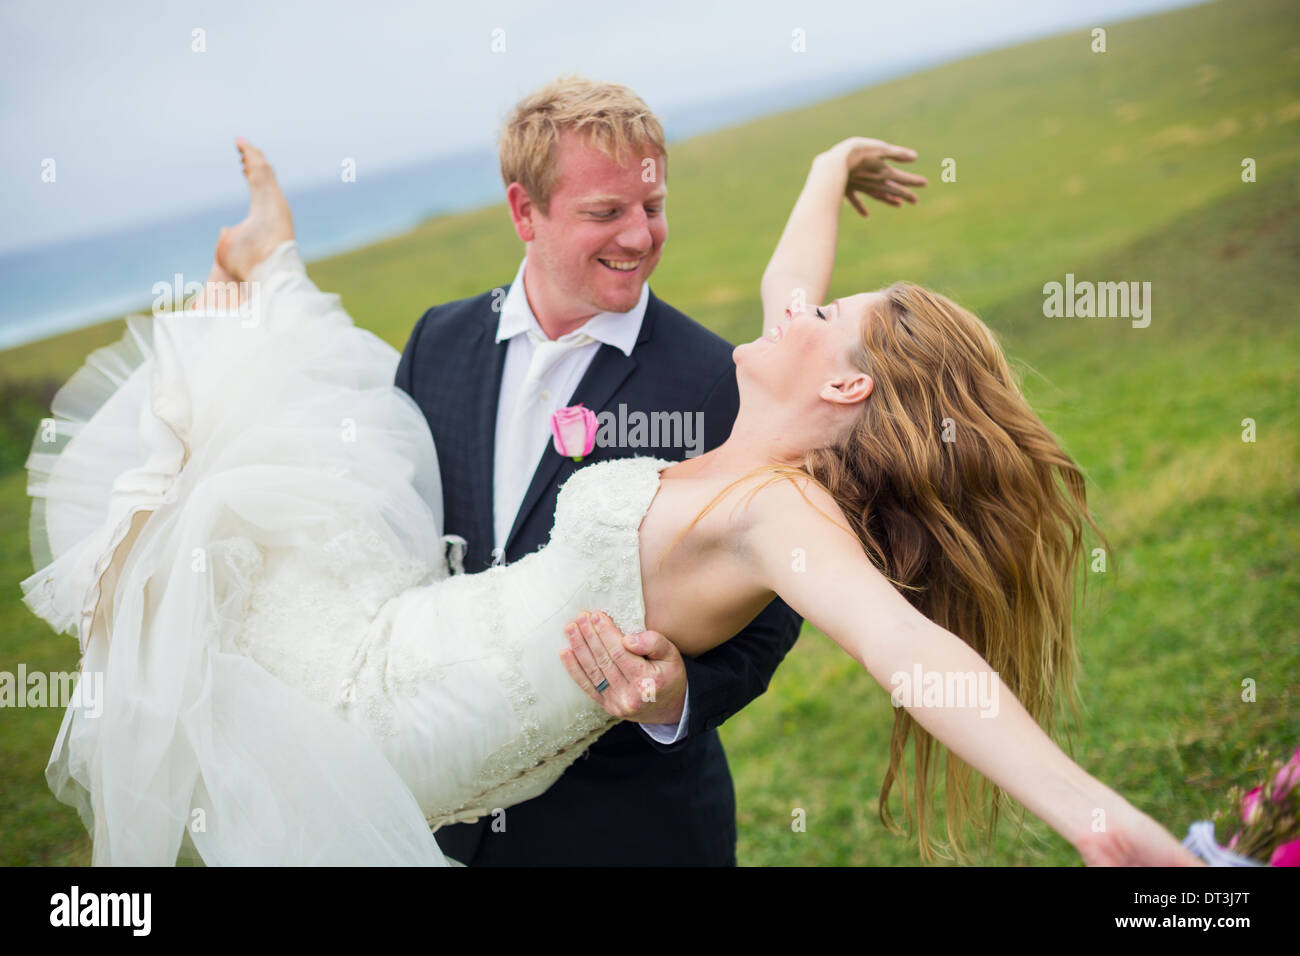 Wedding Couple, Happy Bride and Groom, Shallow depth of field, focus on bride Stock Photo